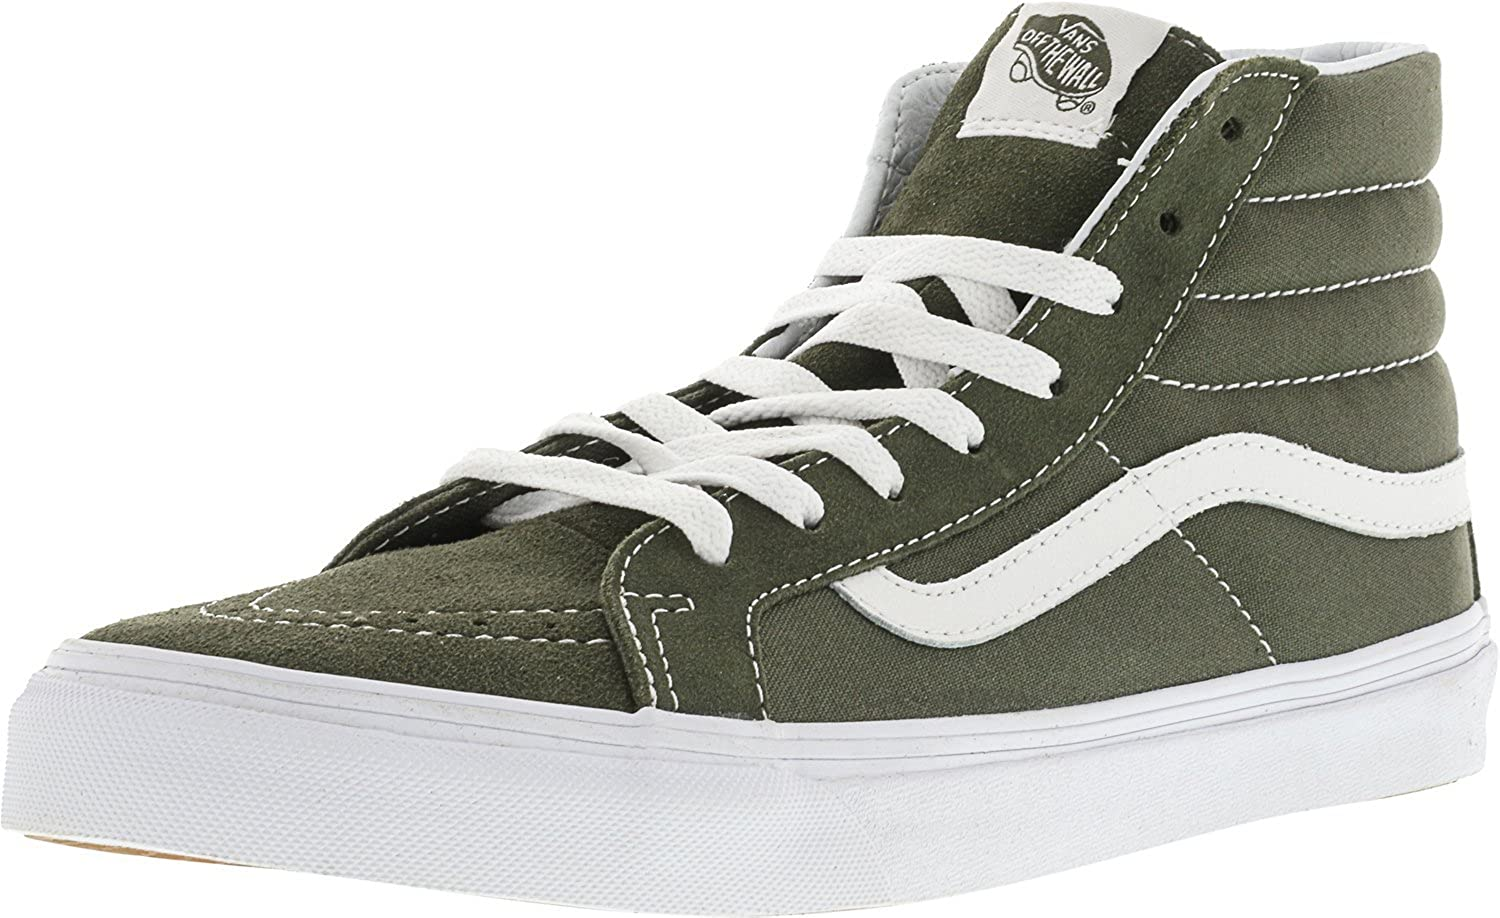 Sk8-Hi Slim Suede And Canvas Grape Leaf/True White Ankle-High Skateboarding Shoe - 10M 8.5M